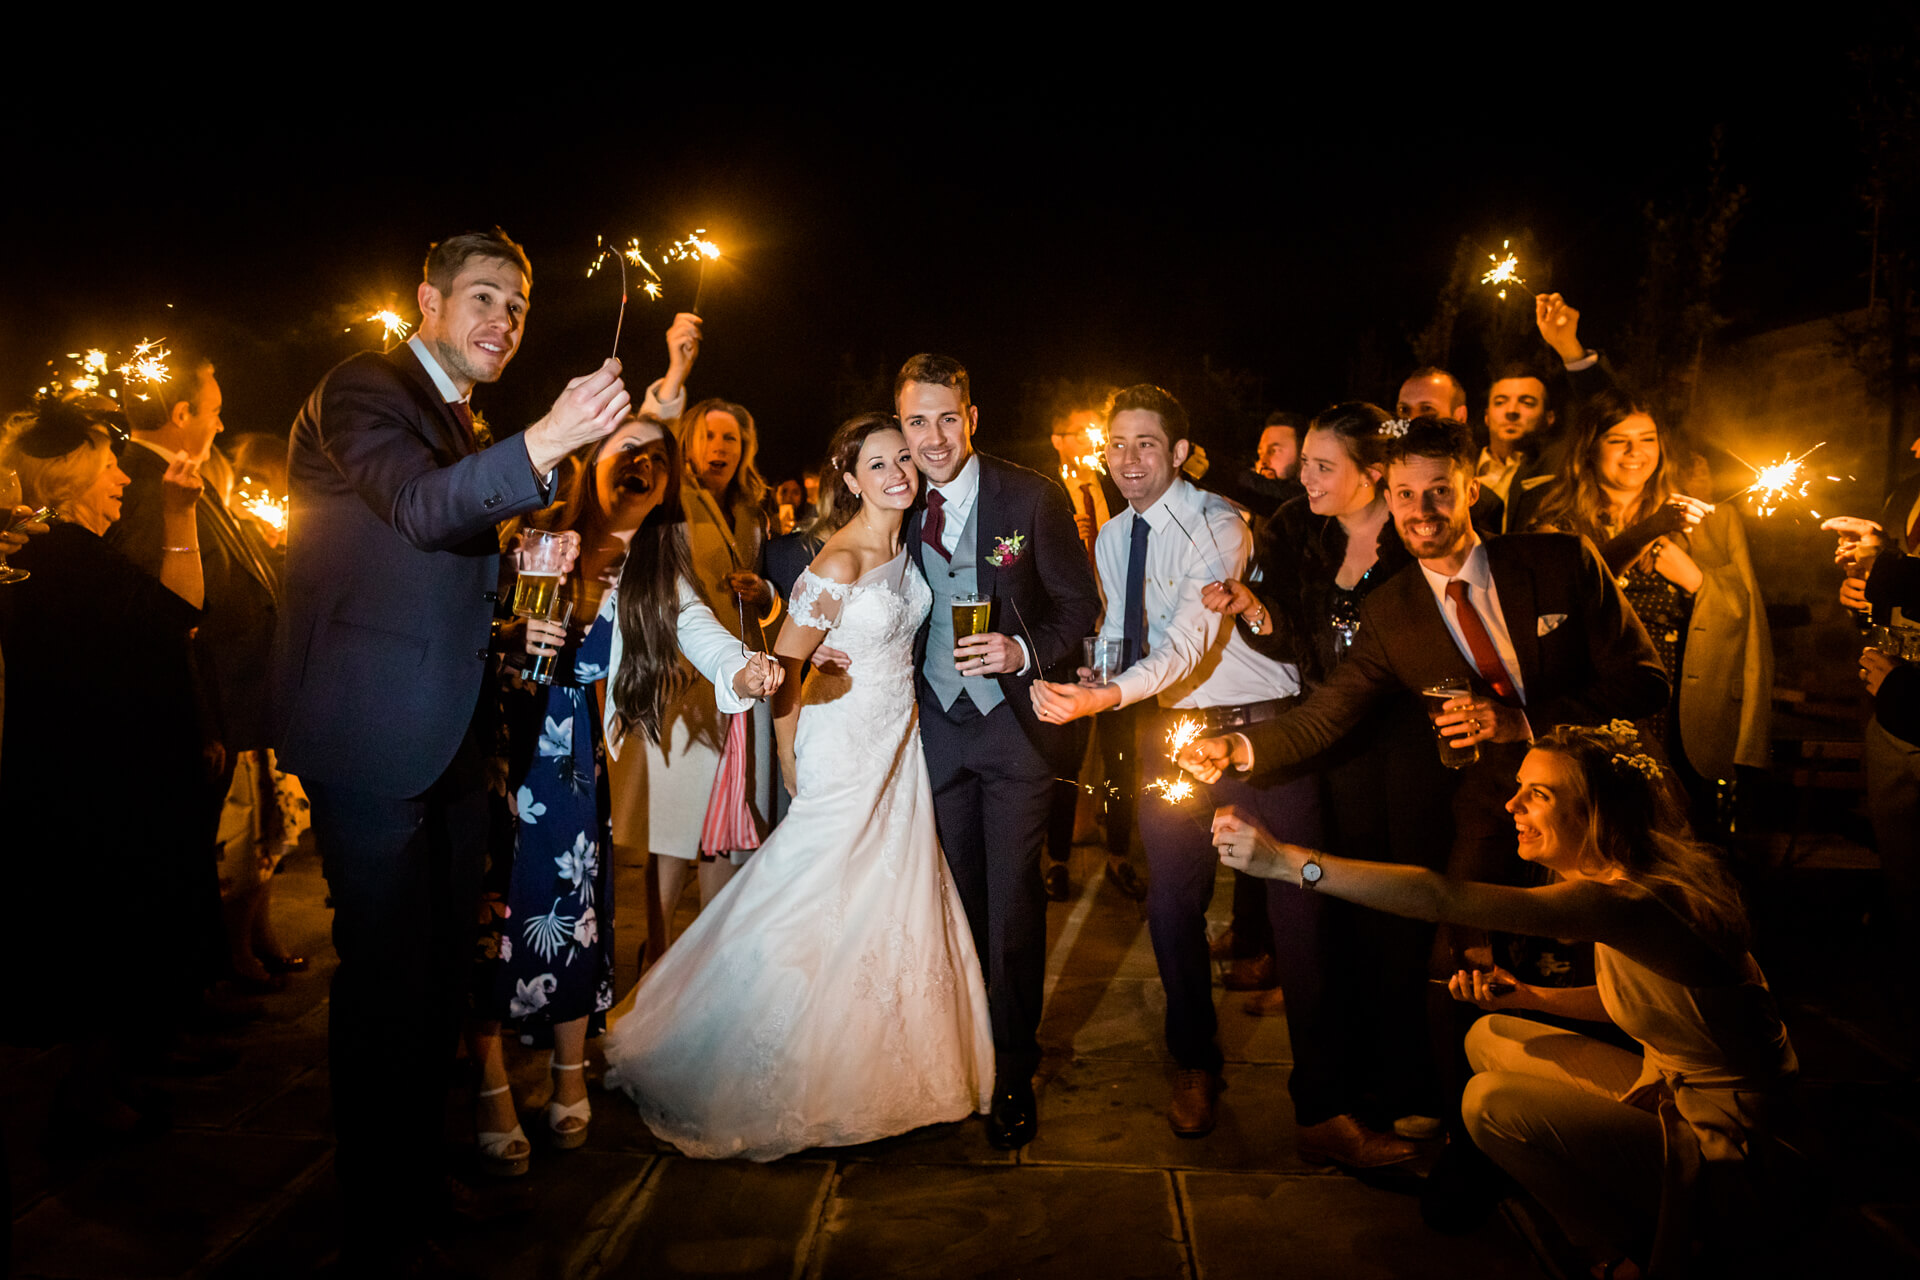 bride and groom surrounded by guests holding sparklers